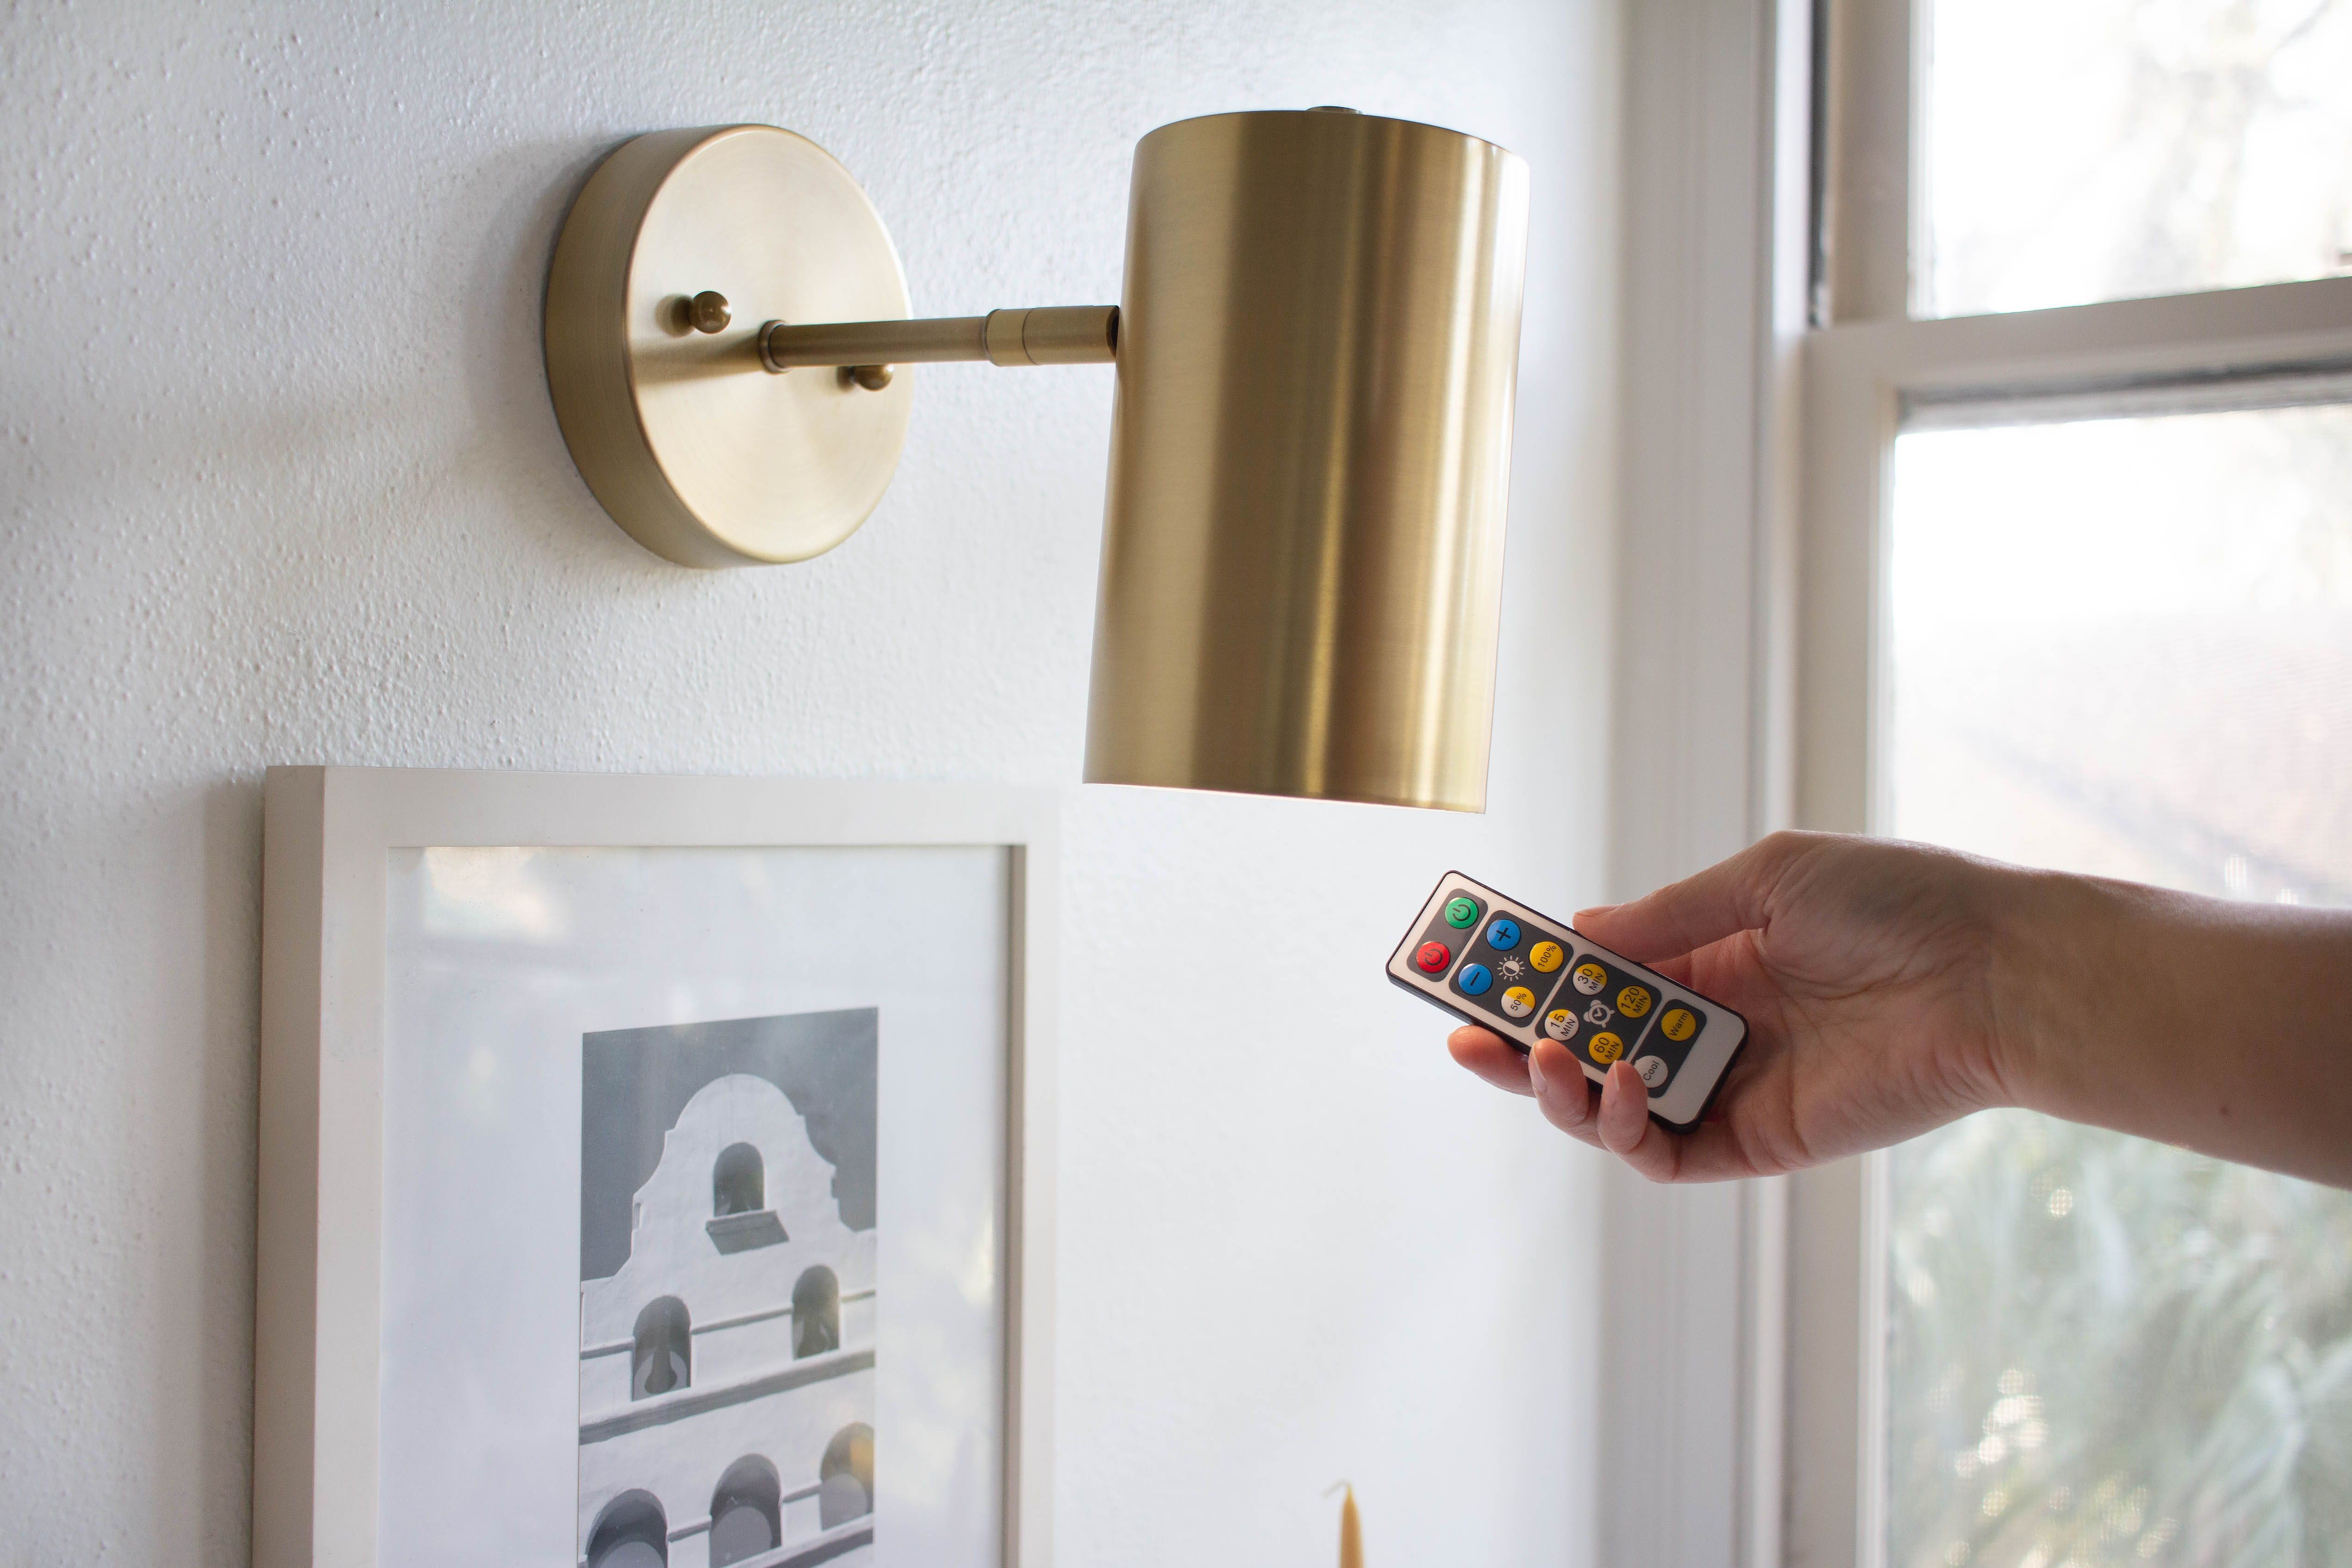 Genius Wall Sconce Hack, No Electricity Required | Hunker ... on Sconces No Electric Power id=94970